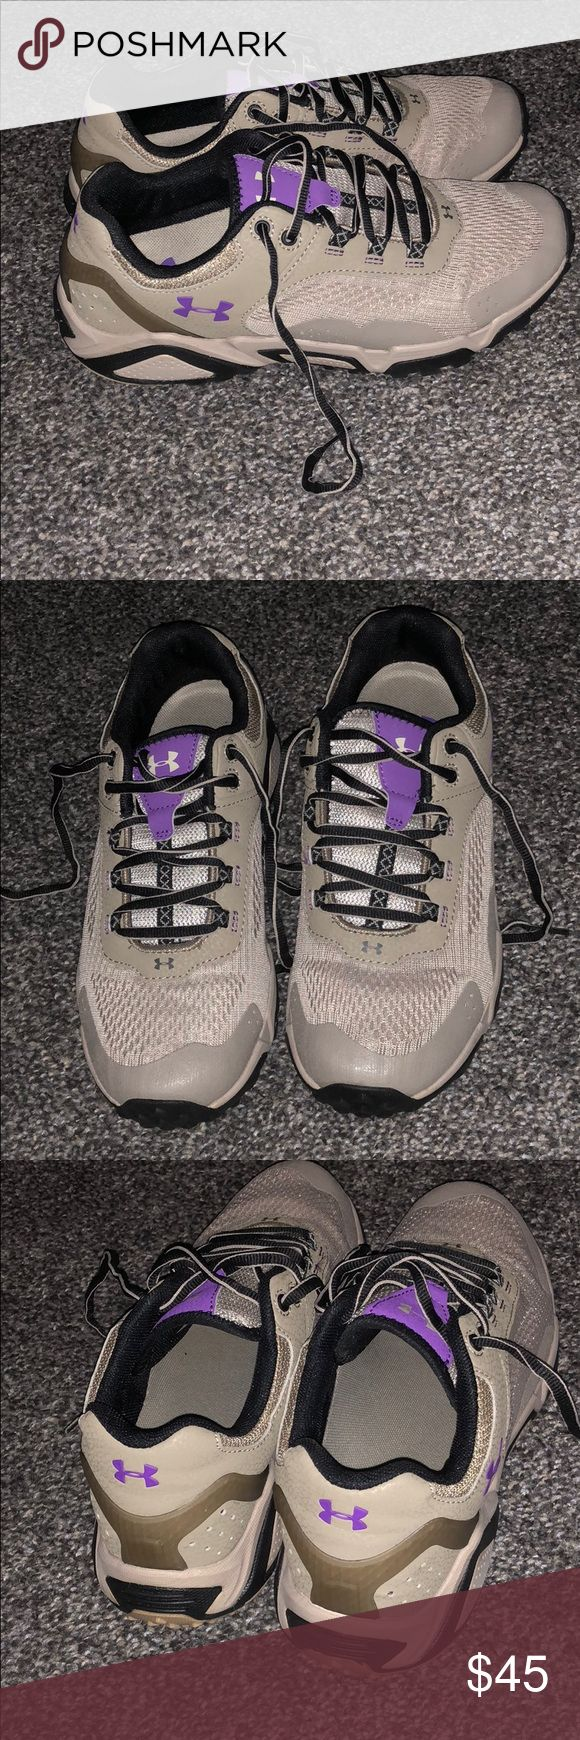 Under Armour Hiking Sneakers Brand new never worn! Under armour hiking sneakers size 8! Under Armour Shoes Sneakers